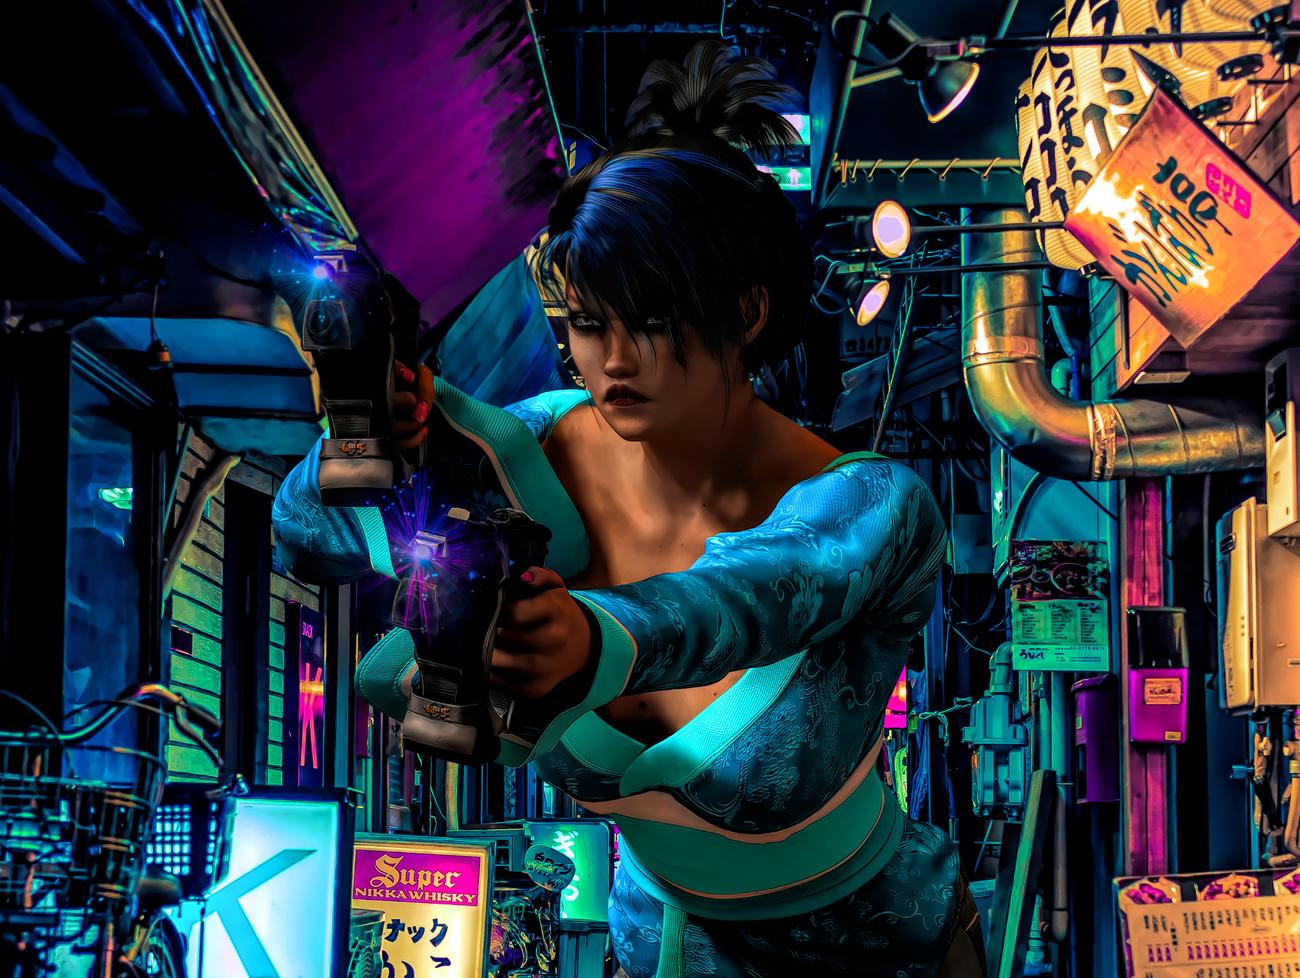 Lethal in Blue by shonsu